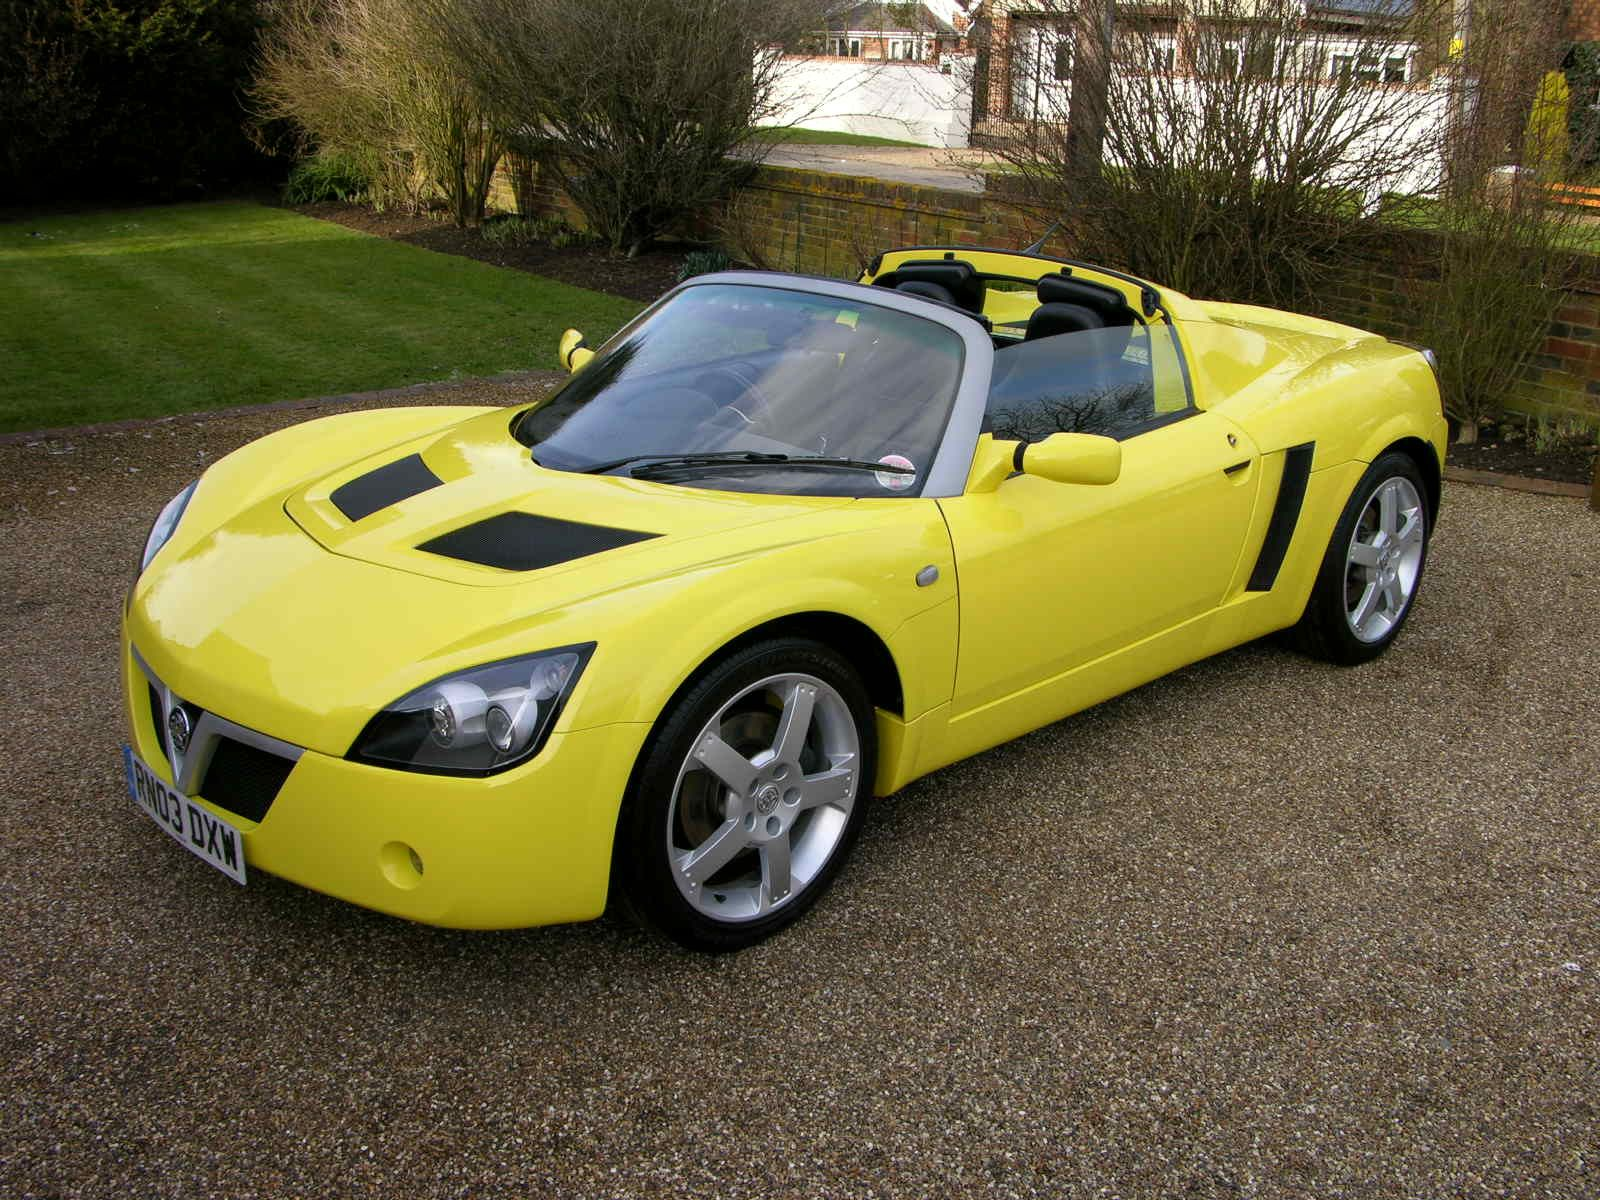 The Only Vauxhall I Love, But Actually Its More Of A Lotus Than The Lotus  Its Based On | Products I Love | Pinterest | Custom Paint Jobs, Cars U2026